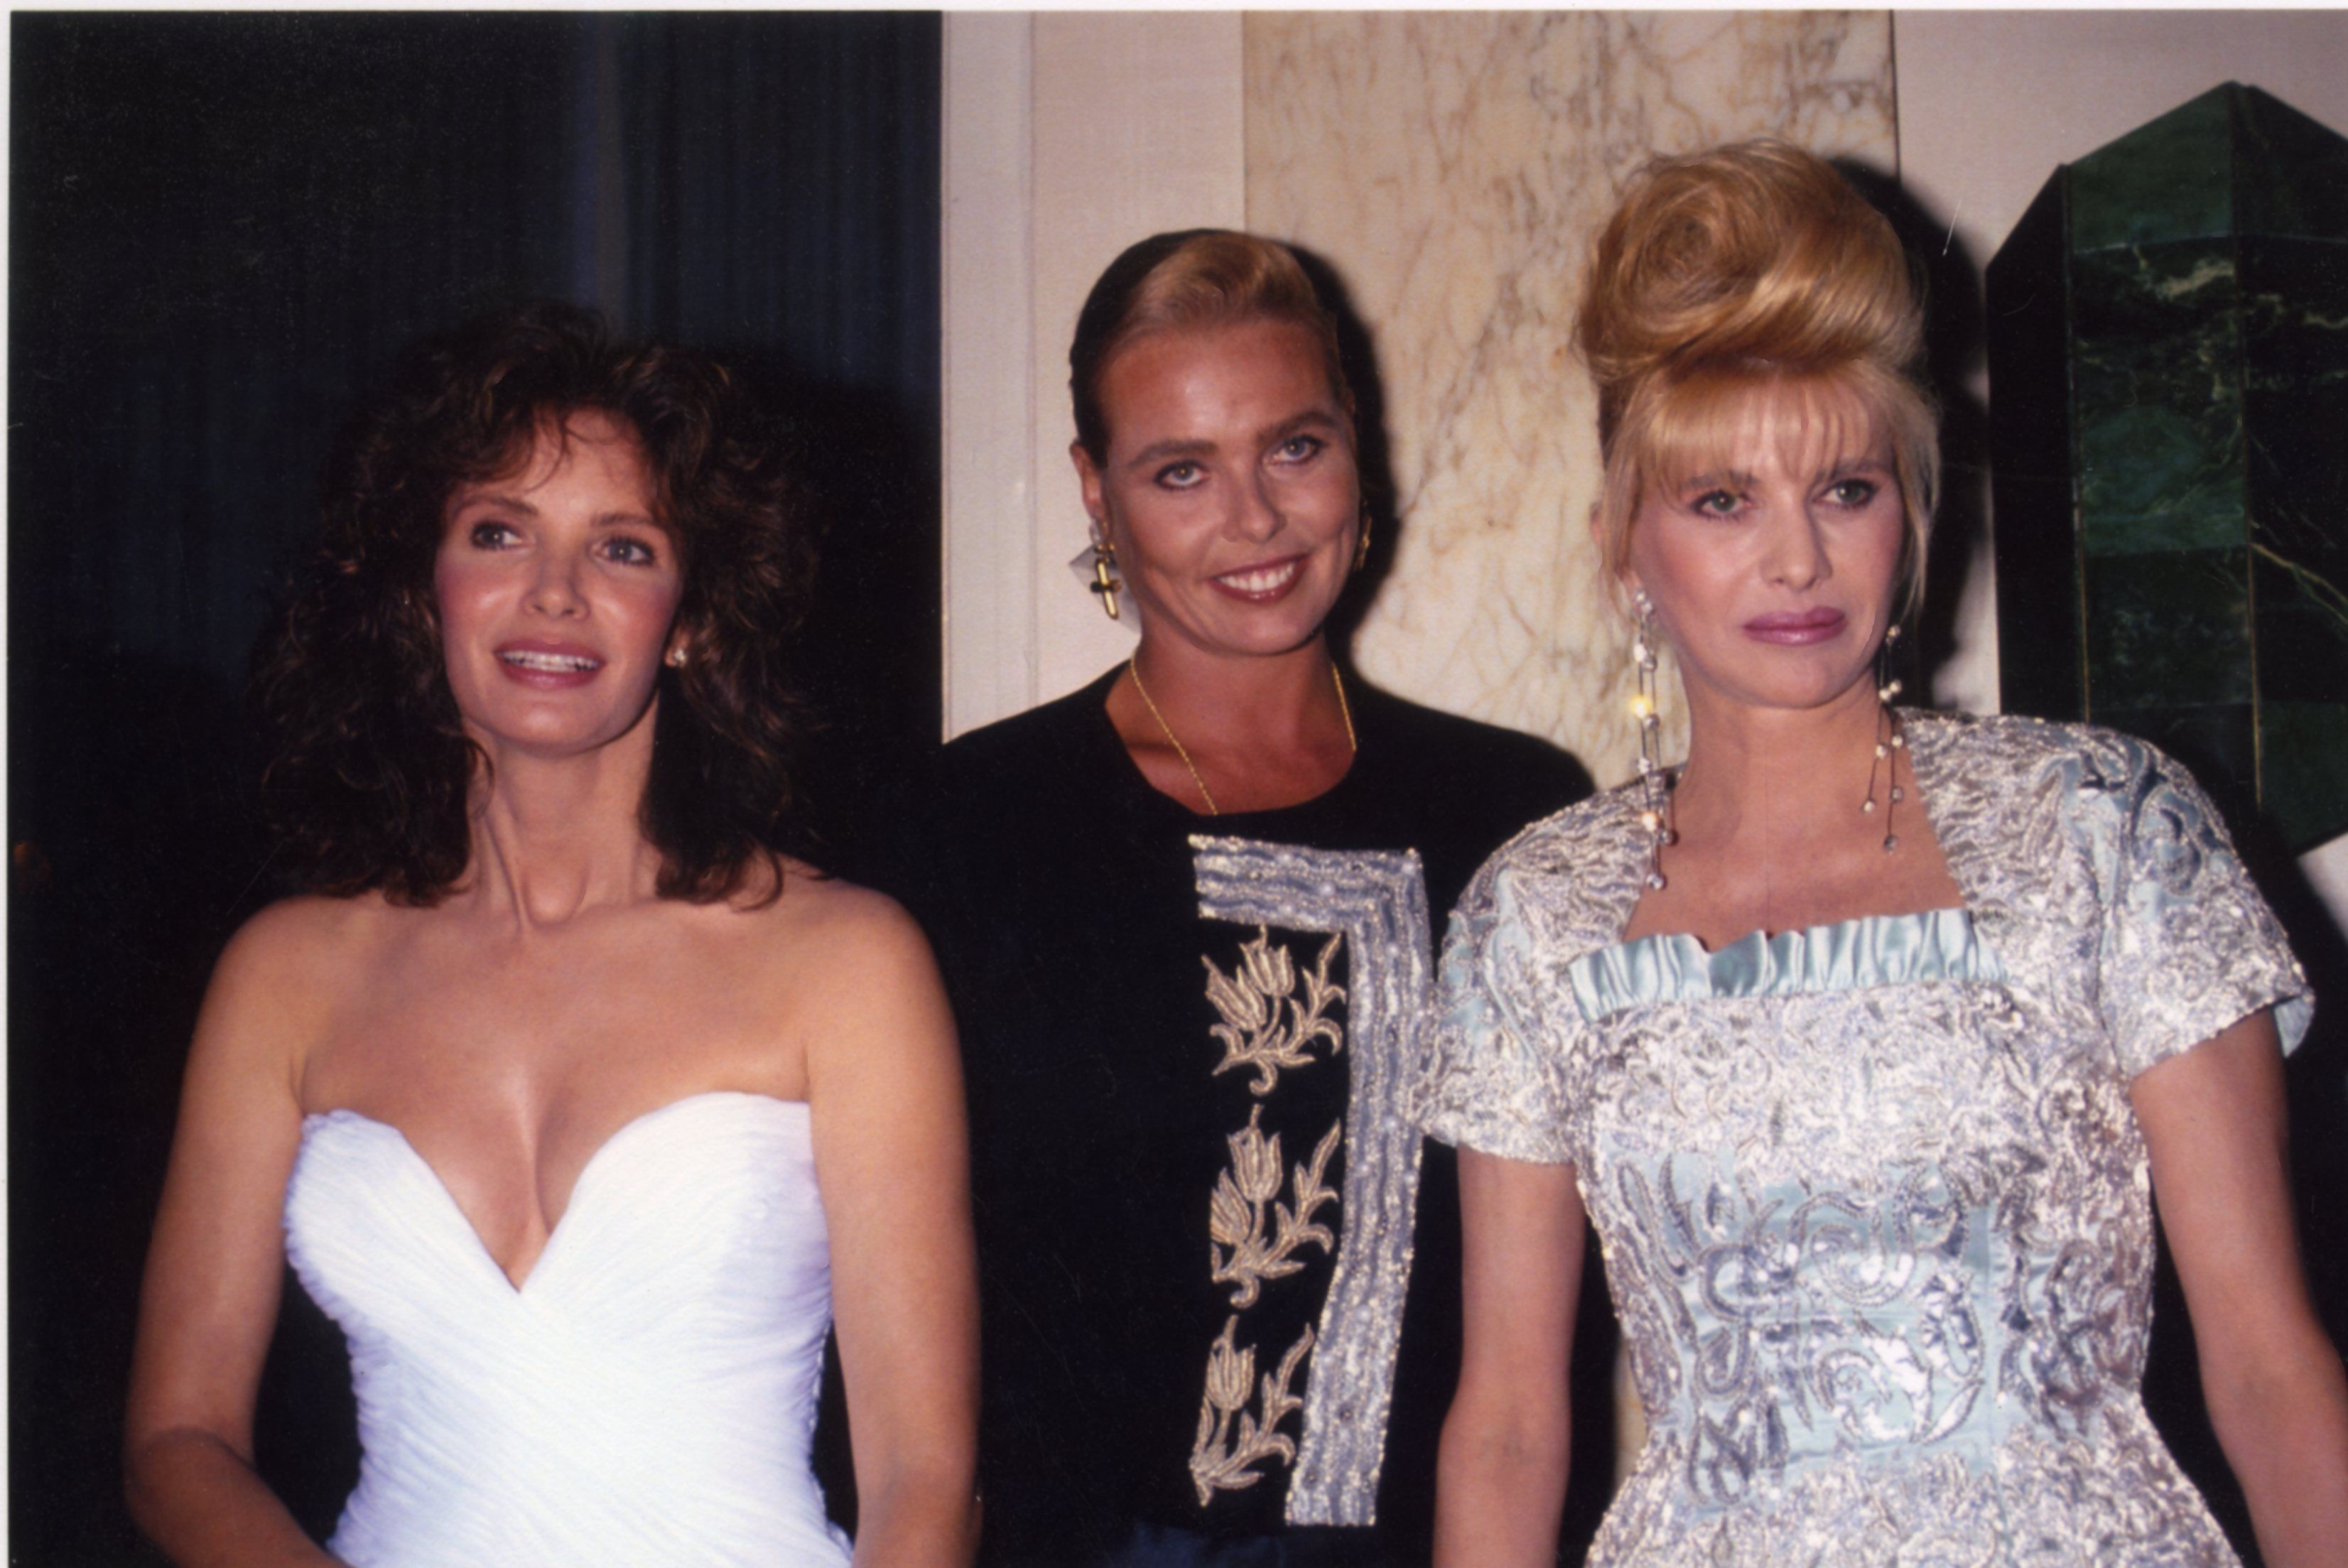 Jaclyn Smith, Margeaux Hemingway and Ivana Trump